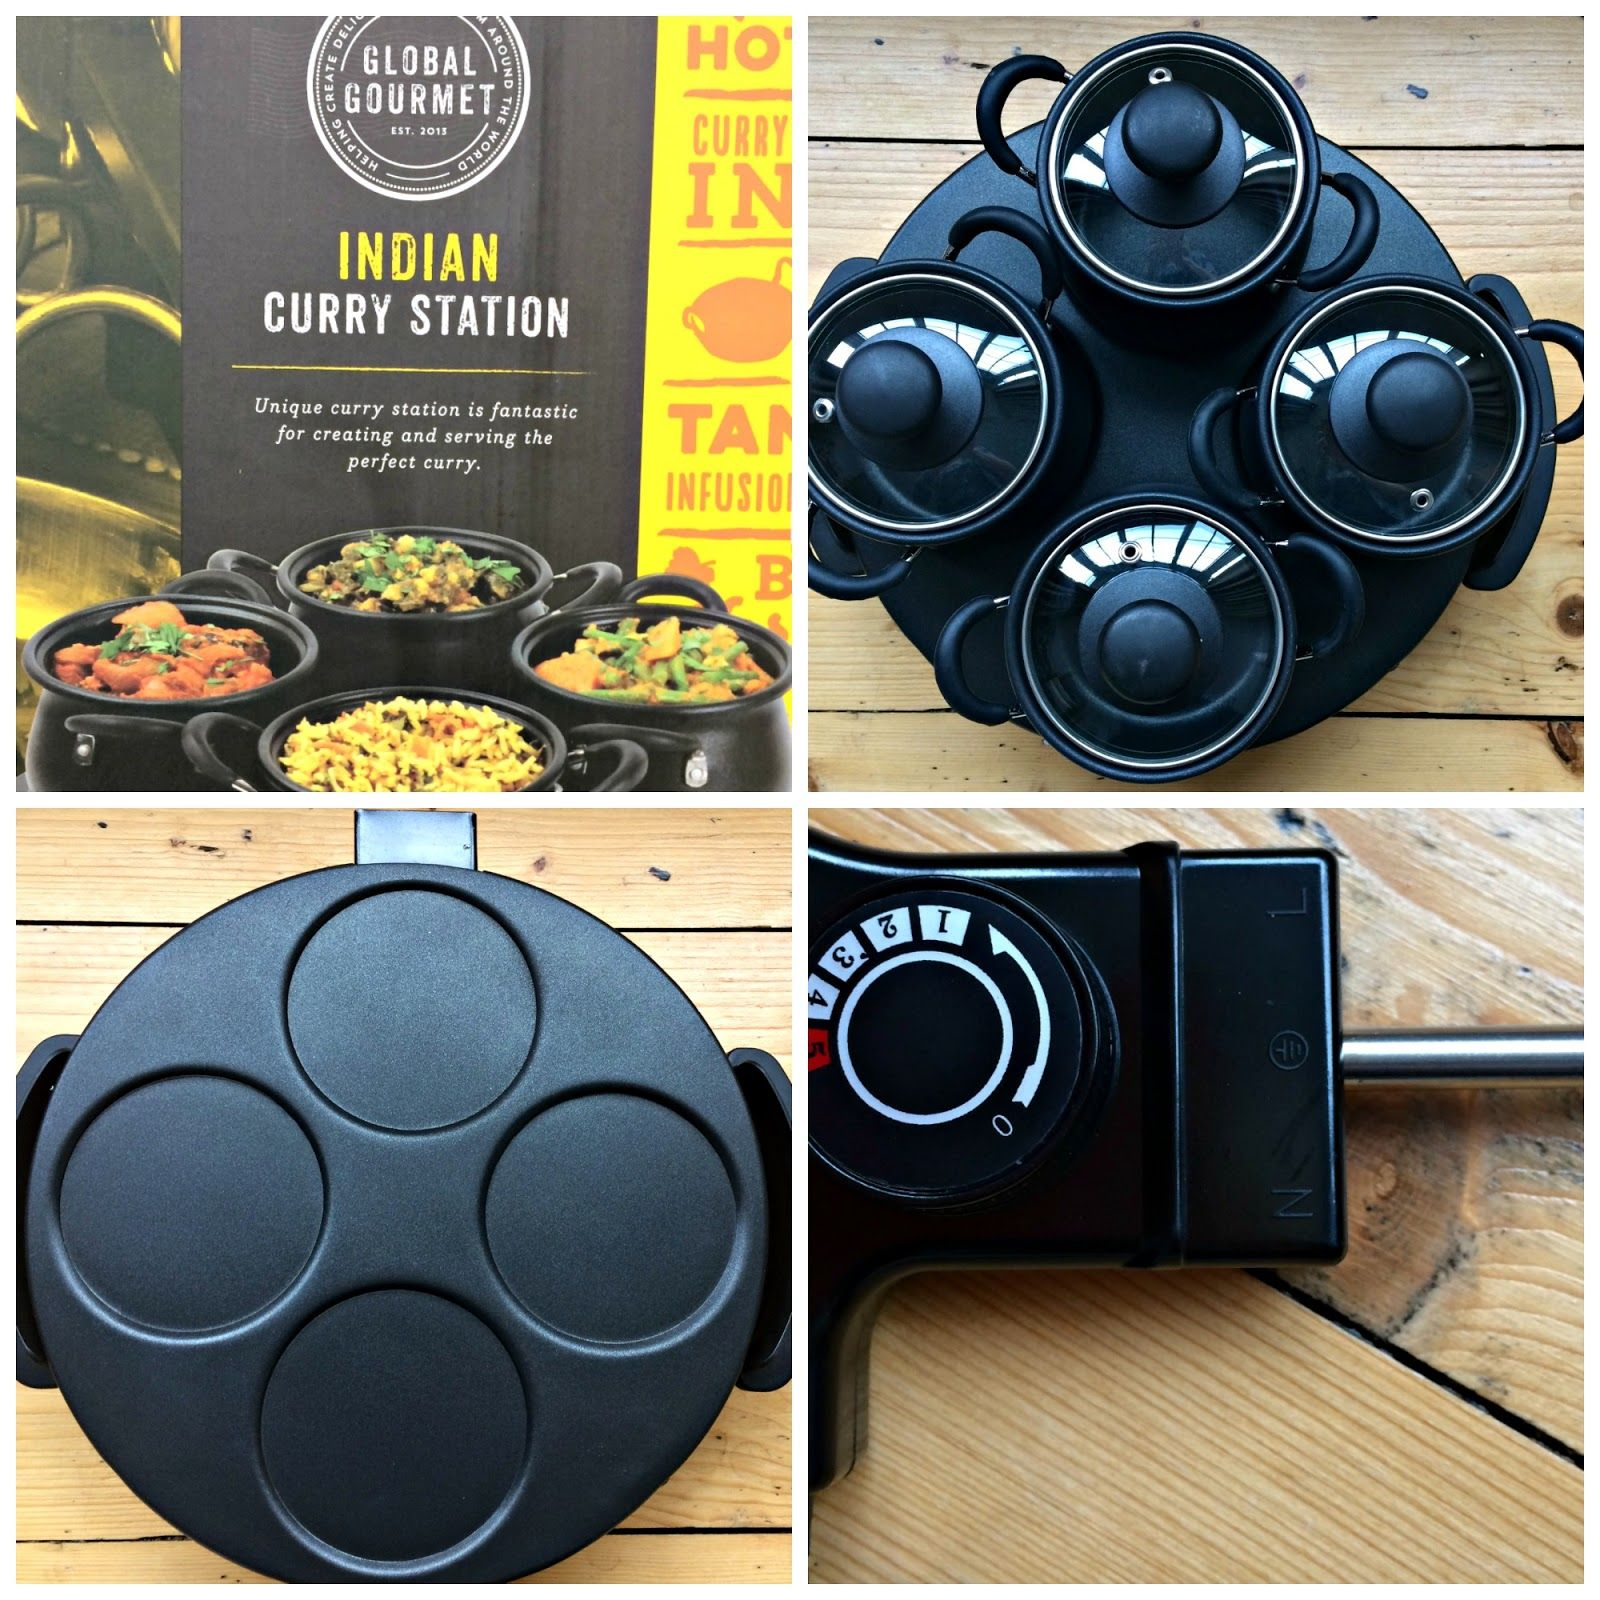 Global Gourmet Indian Curry Station By Sensio Home Review